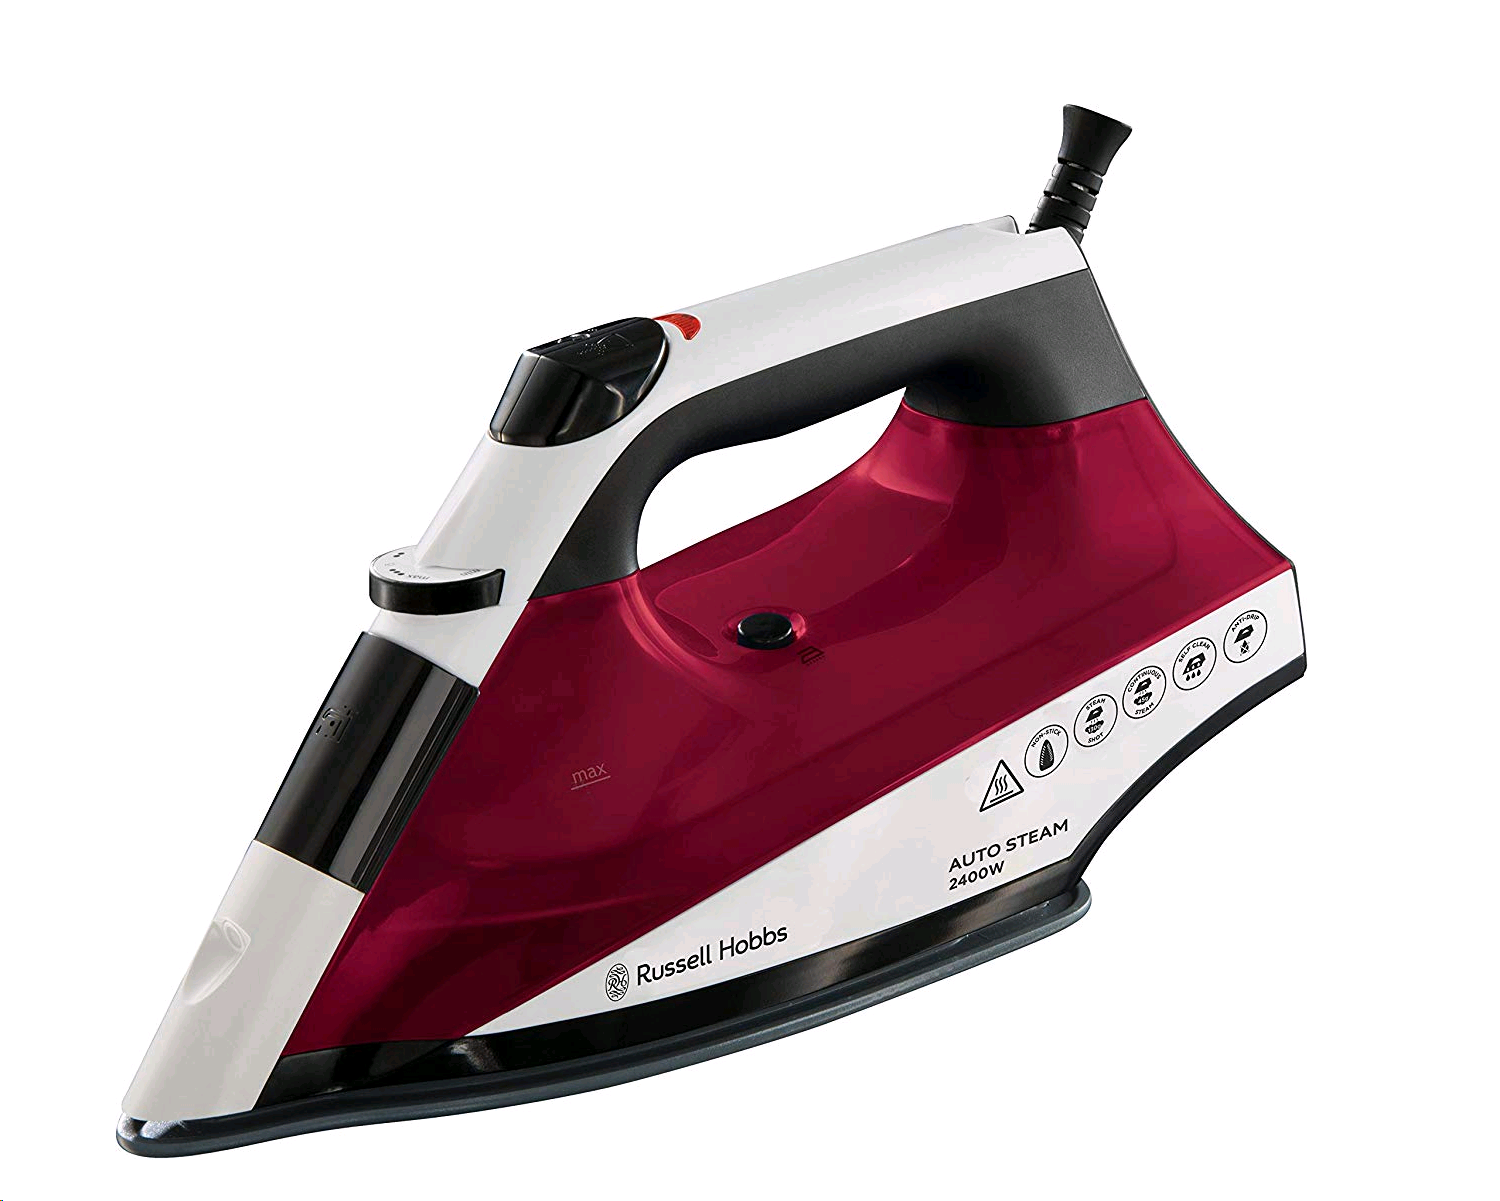 Russell hobbs Auto Steam Iron non Stick Plate